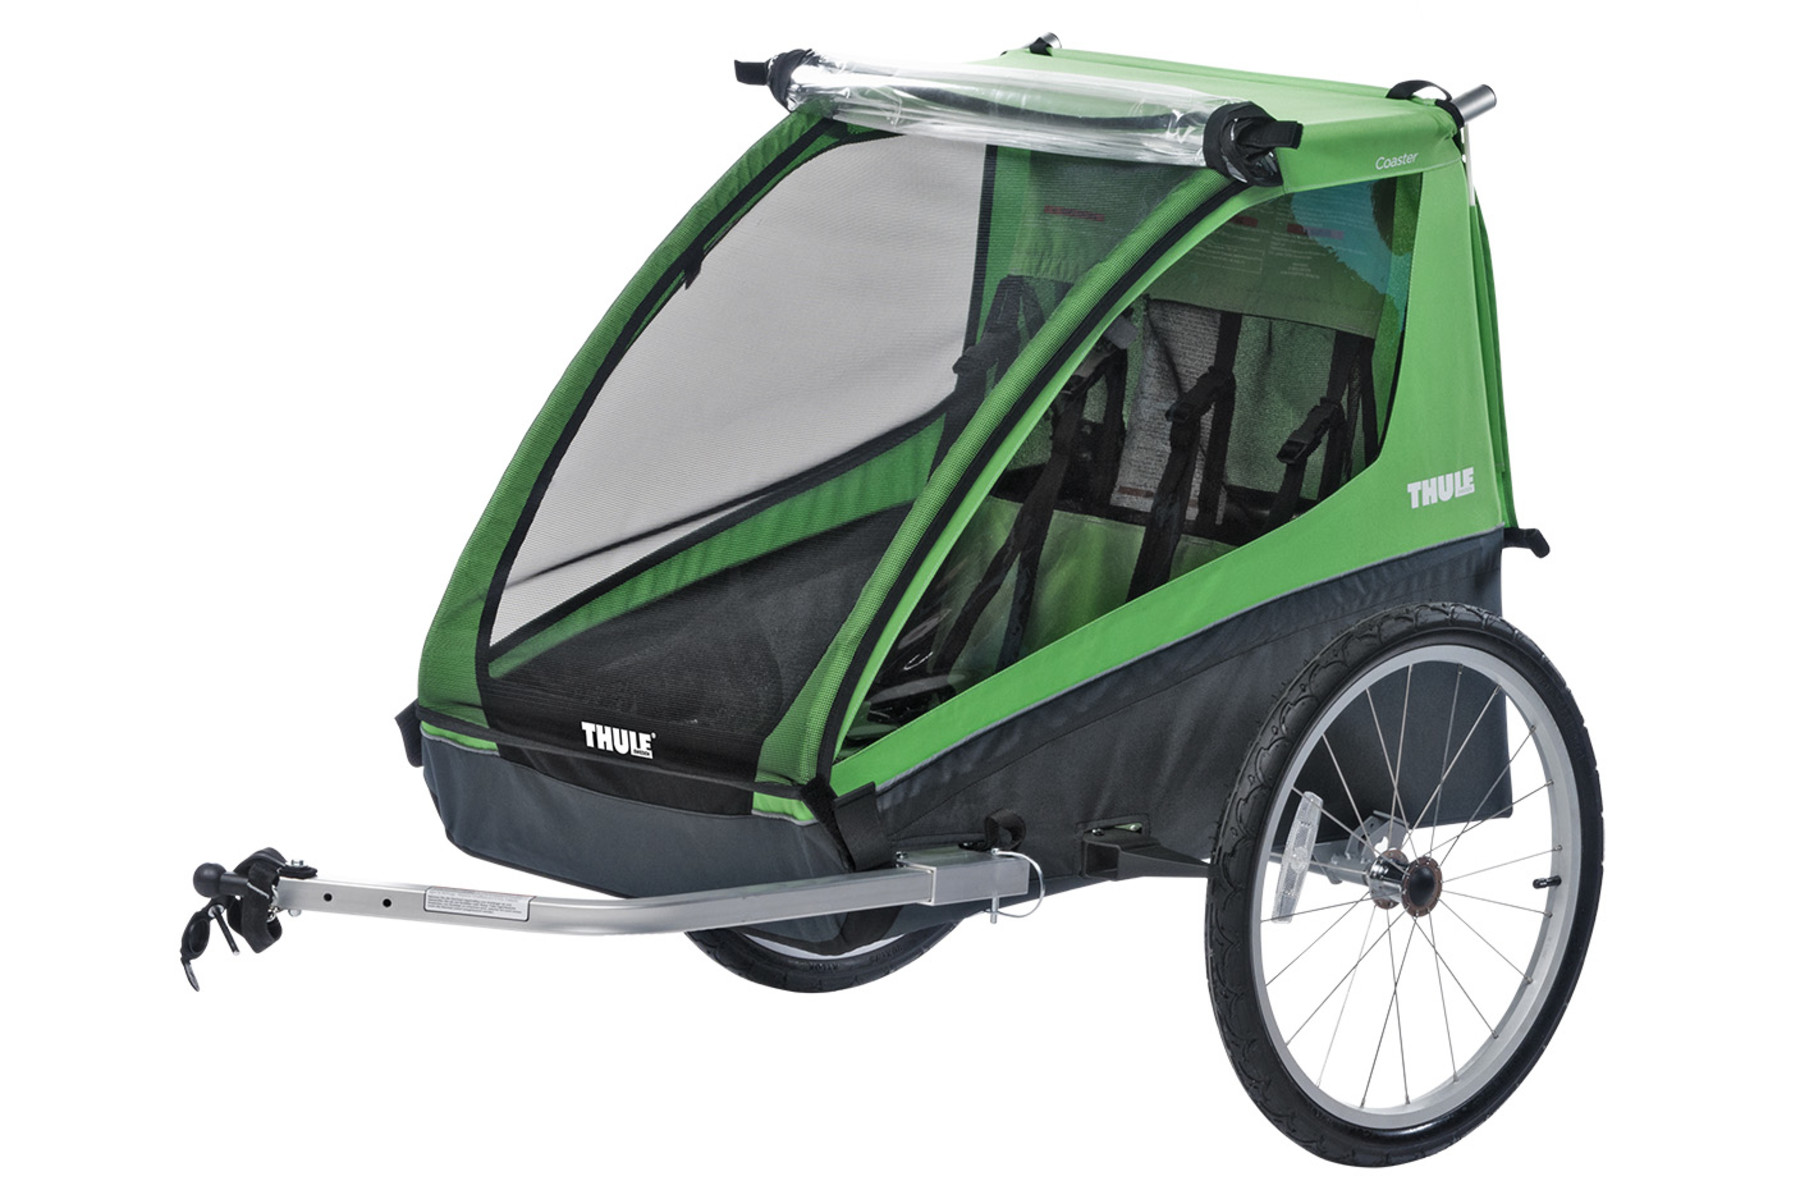 https://www.youtube.com/embed/yfKAQOGWrF0?rel=0. Bicycle trailer Thule Cadence Bicycle trailer Thule Cadence